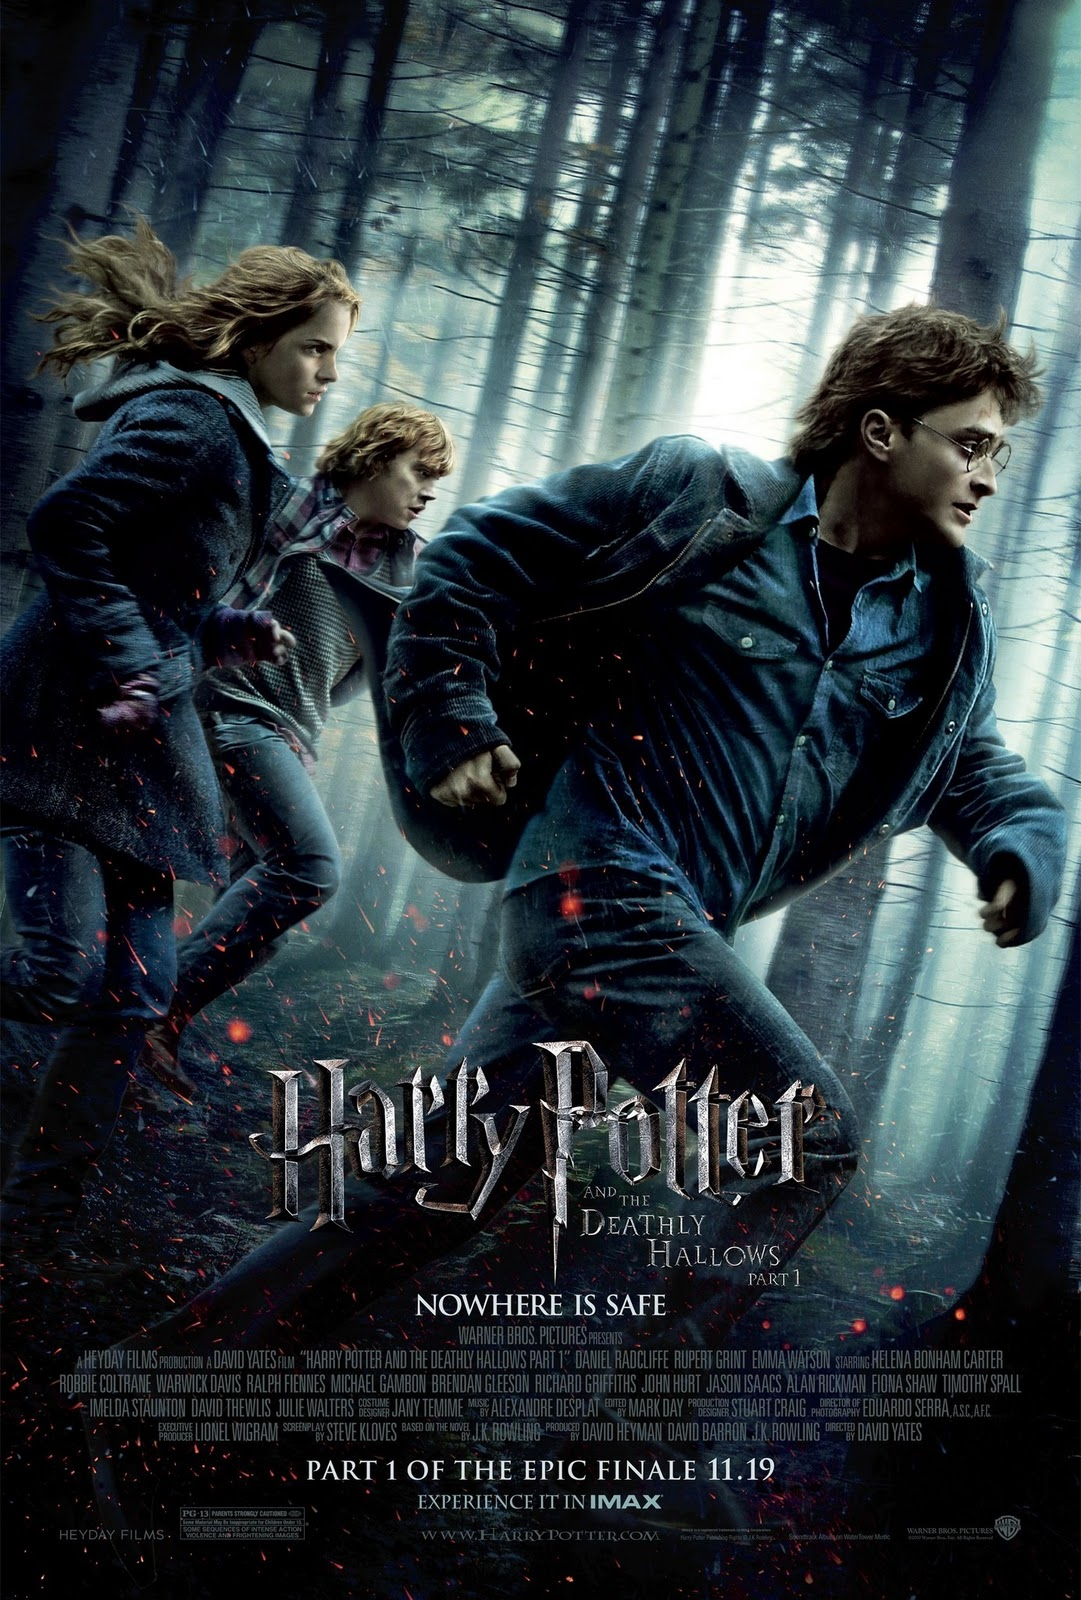 http://1.bp.blogspot.com/_Y-DbBvf7R5Y/TOZ_-GCozrI/AAAAAAAAe2E/pzSQFAaAi7I/s1600/harry_potter_and_the_deathly_hallows_part_1_movie_poster2.jpg